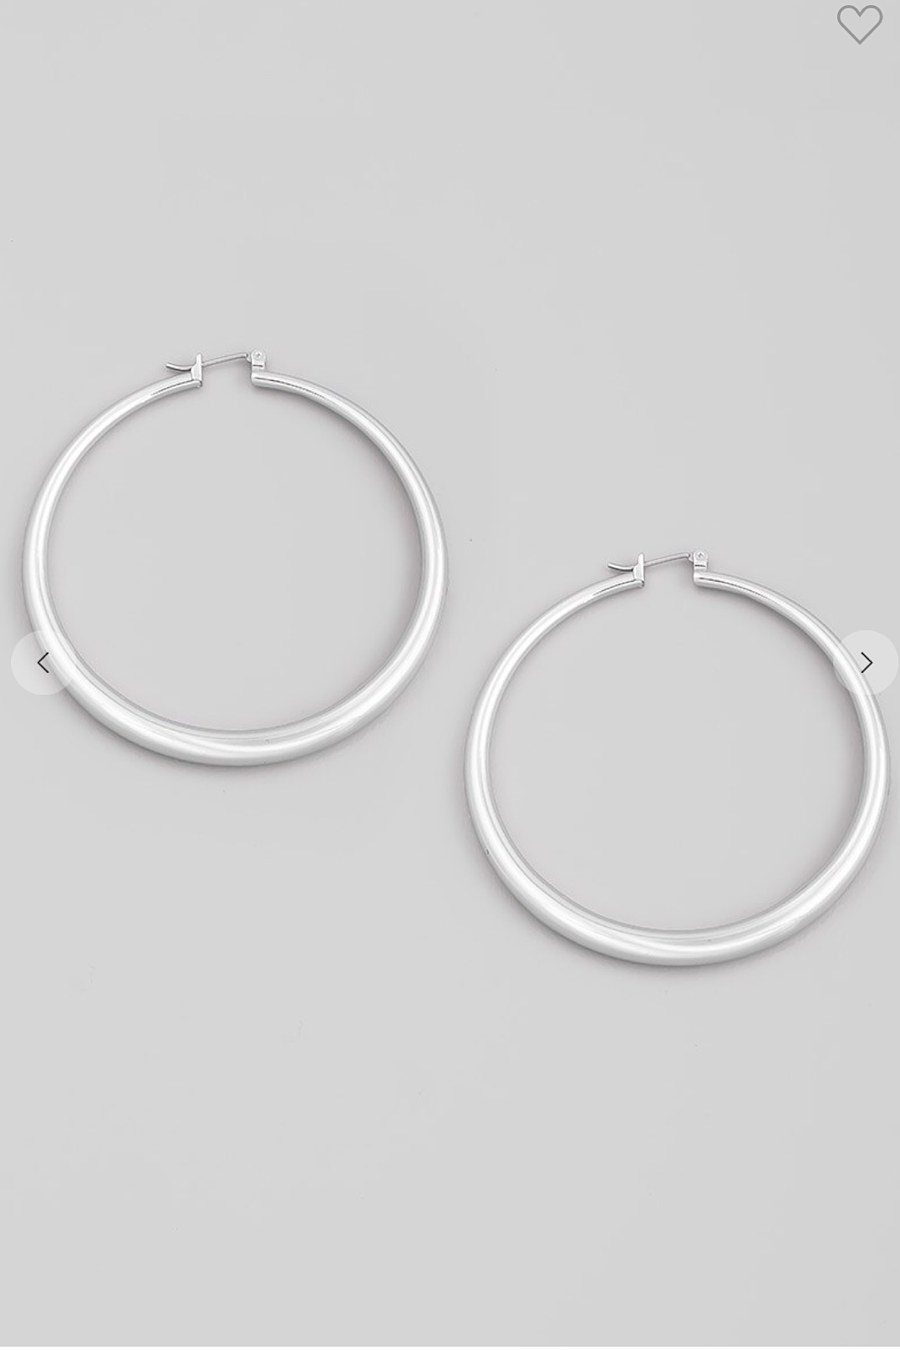 Large 60MM Hoop Earrings in Gold or Silver